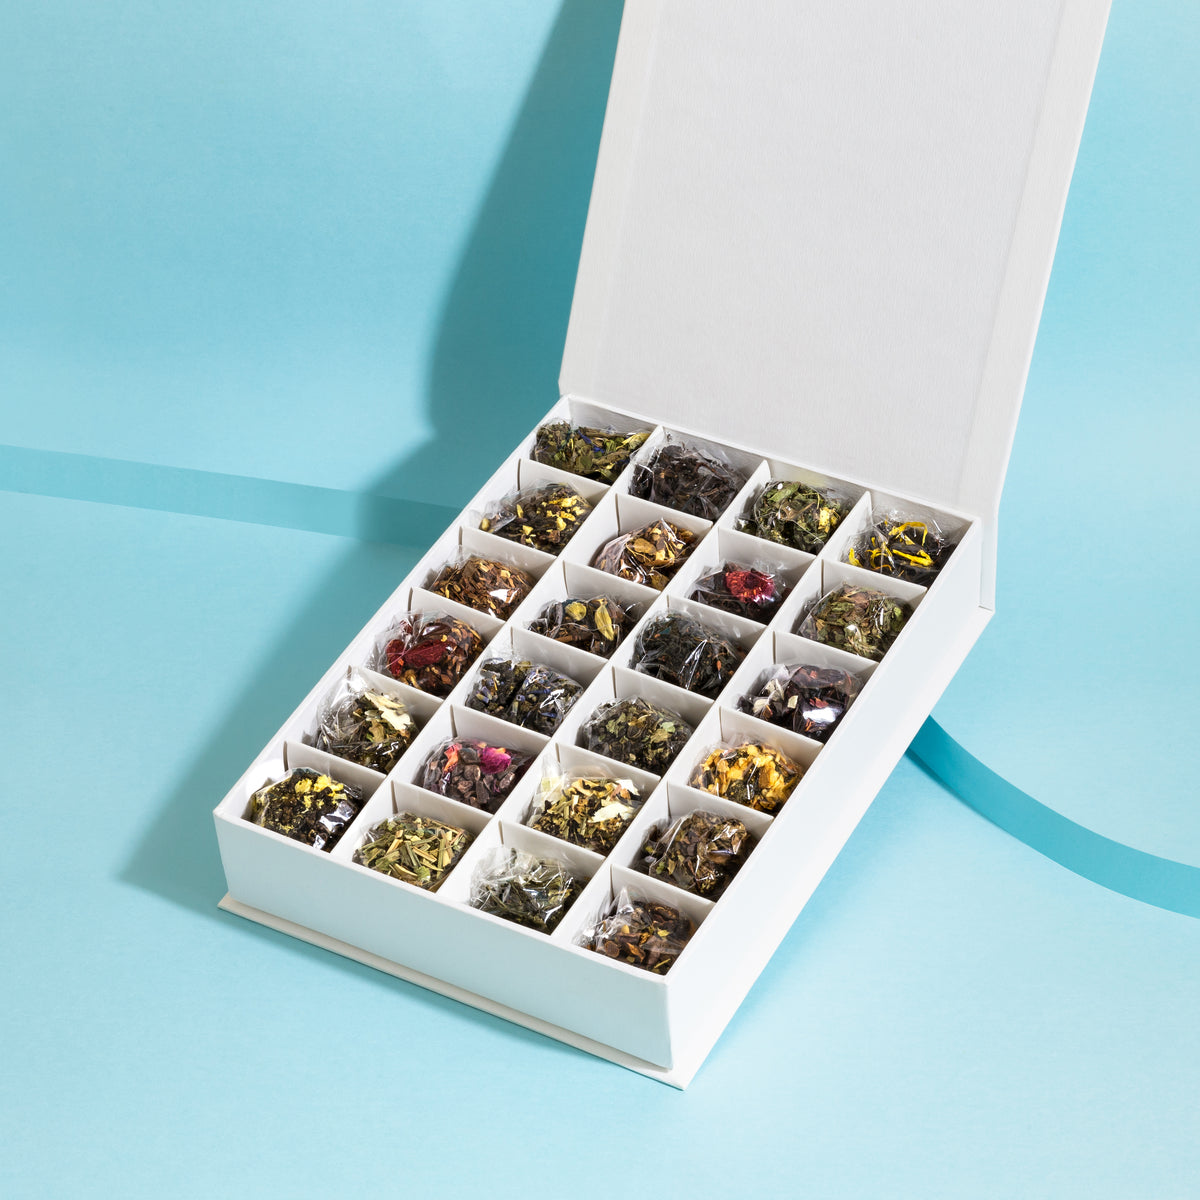 The Rabbit Hole tea sampler - 24 loose leaf tea varieties in a white gift box on a blue background - tea advent calendar